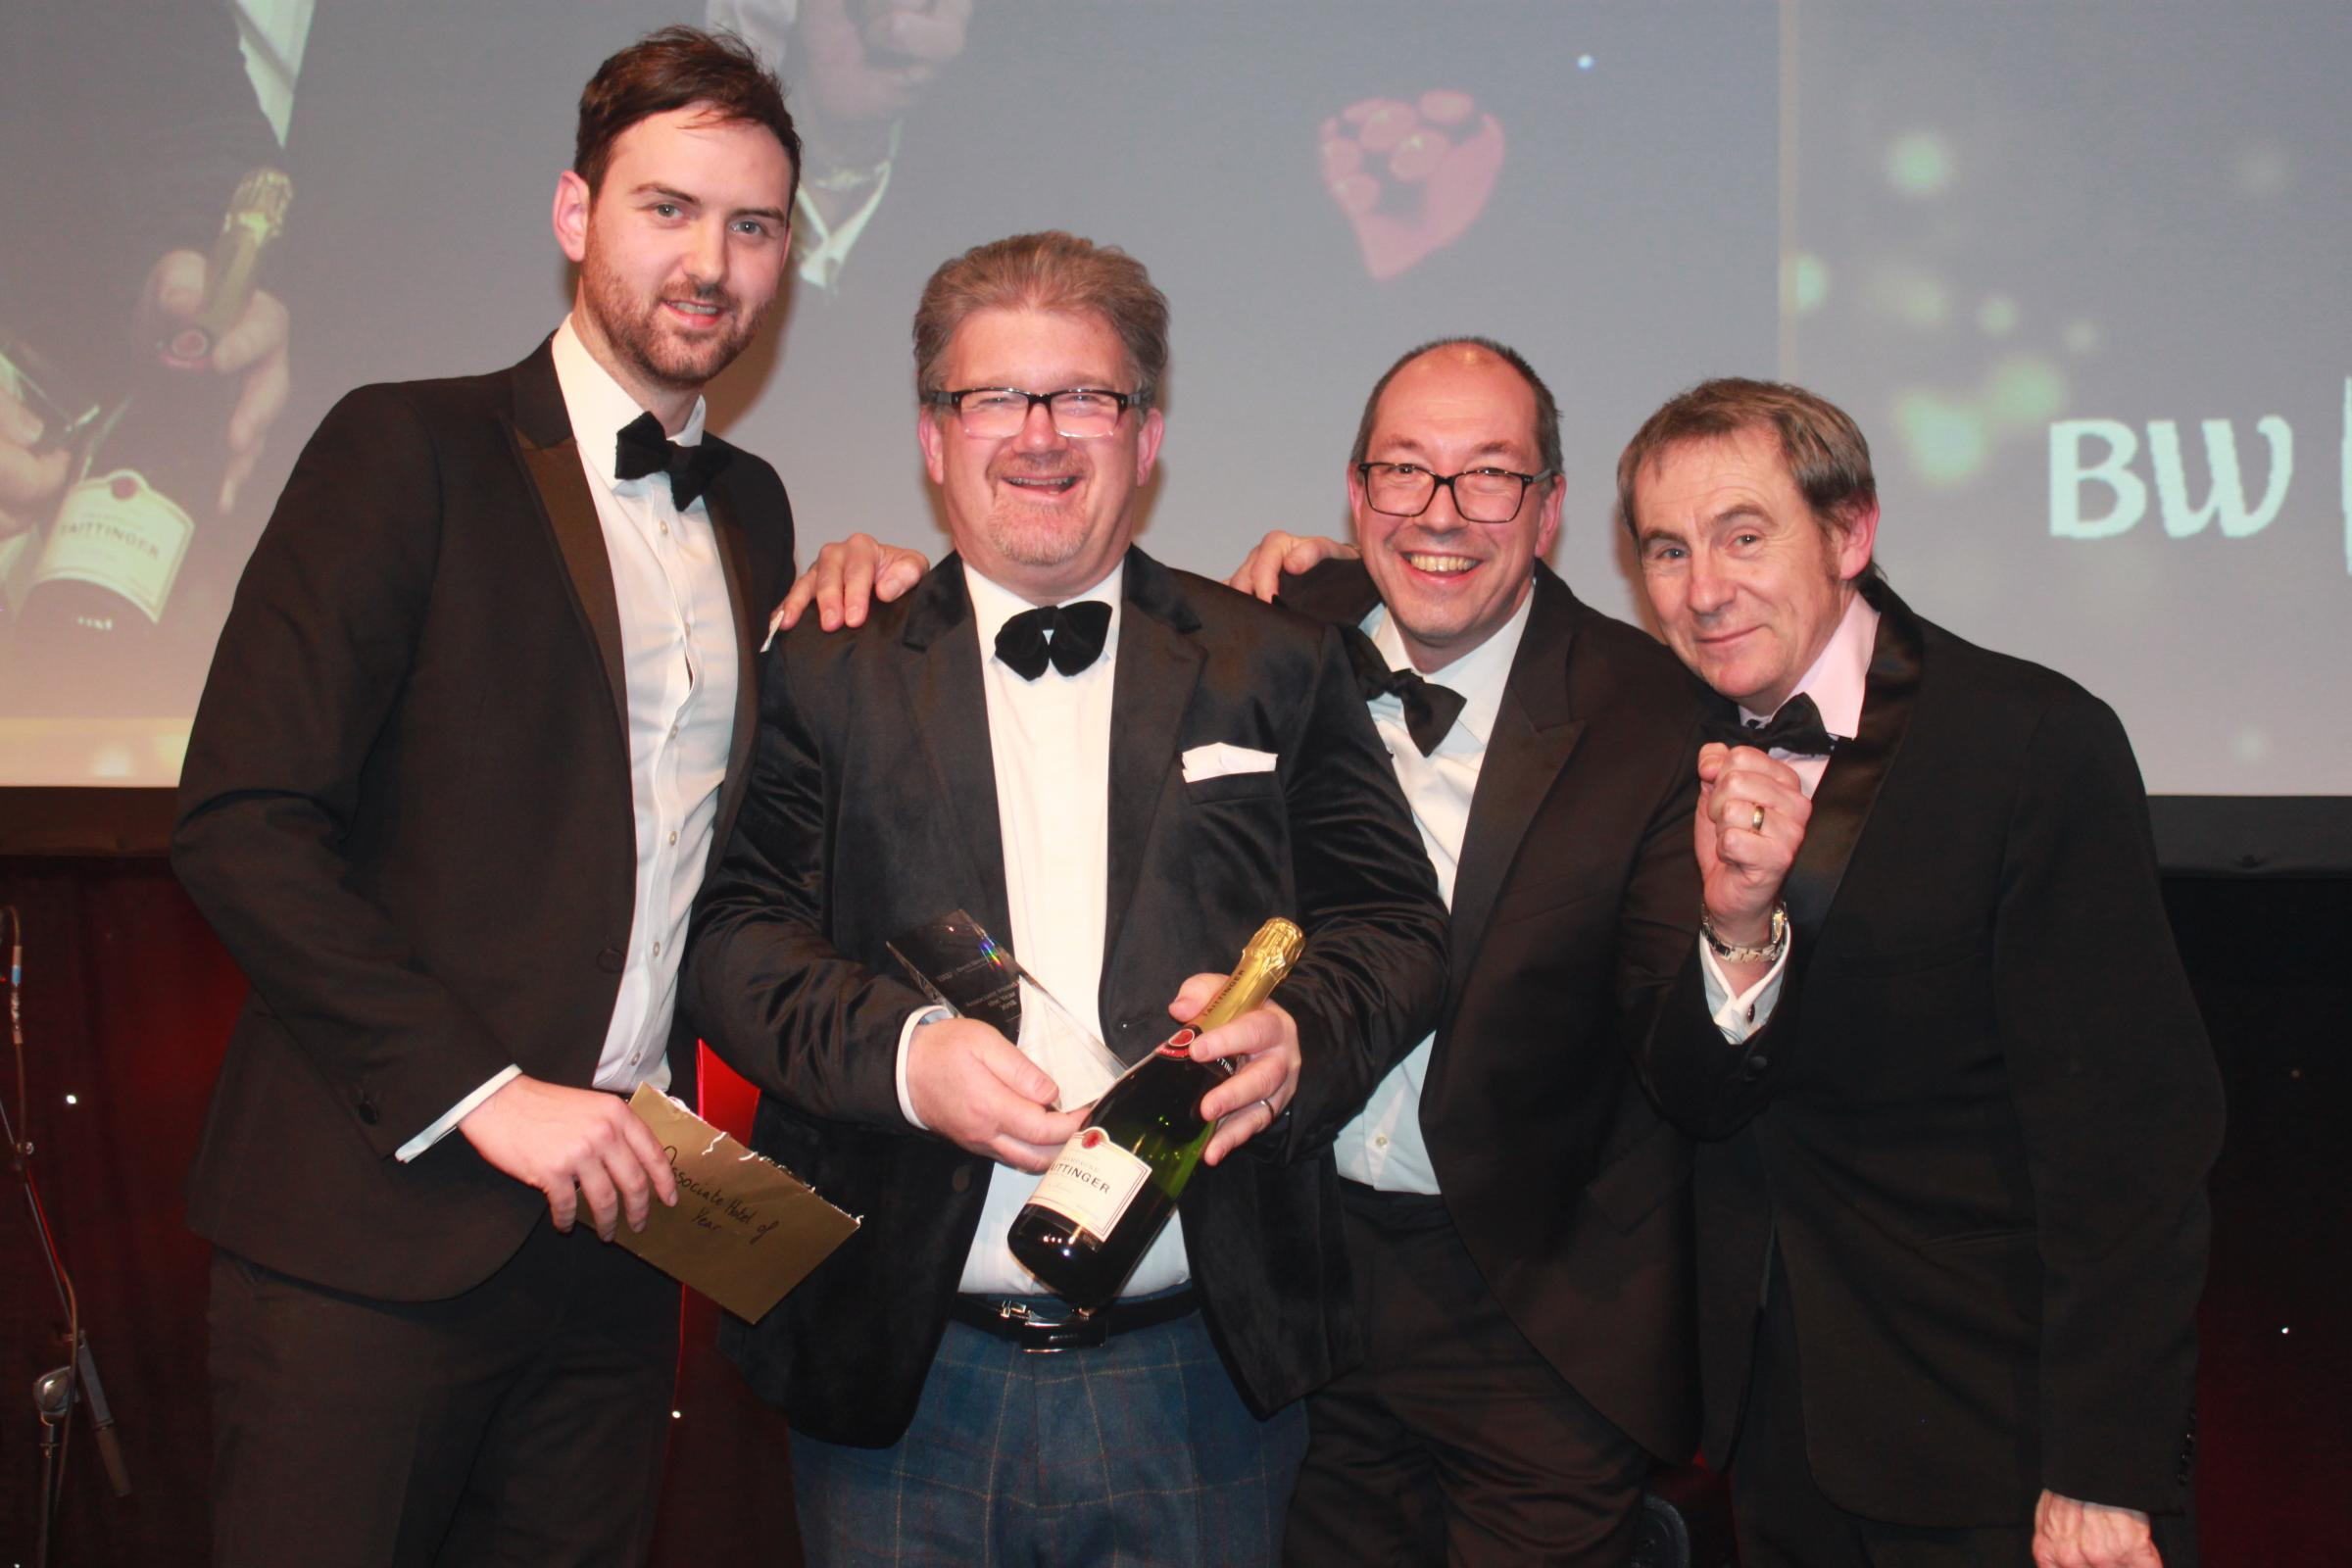 From left: Representative from Knight Frank, the sponsor of the award, Simon Murphy, general manager at Dean Court Hotel, Tim Rumney, chairman of Interchange and Consort Hotels (Best Western GB) and Nigel Barden, food and drink journalist and broadcaster